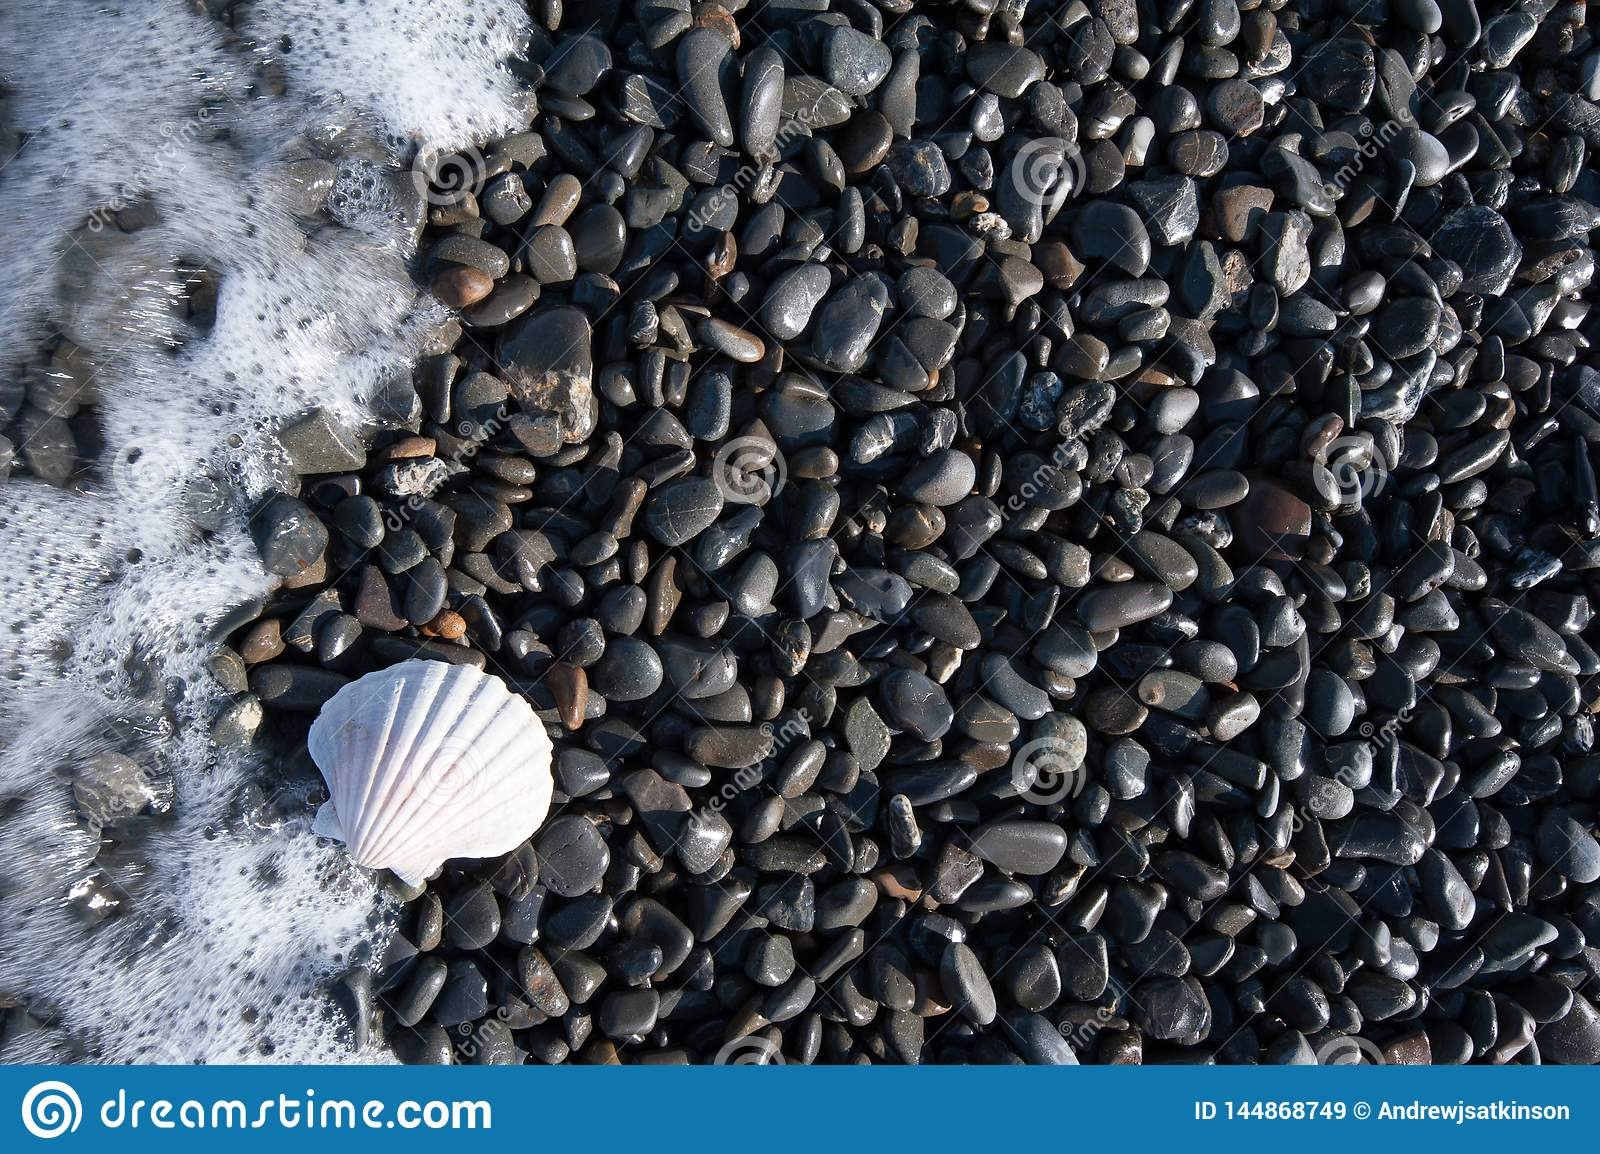 A white shell on a black pebble beach with waves